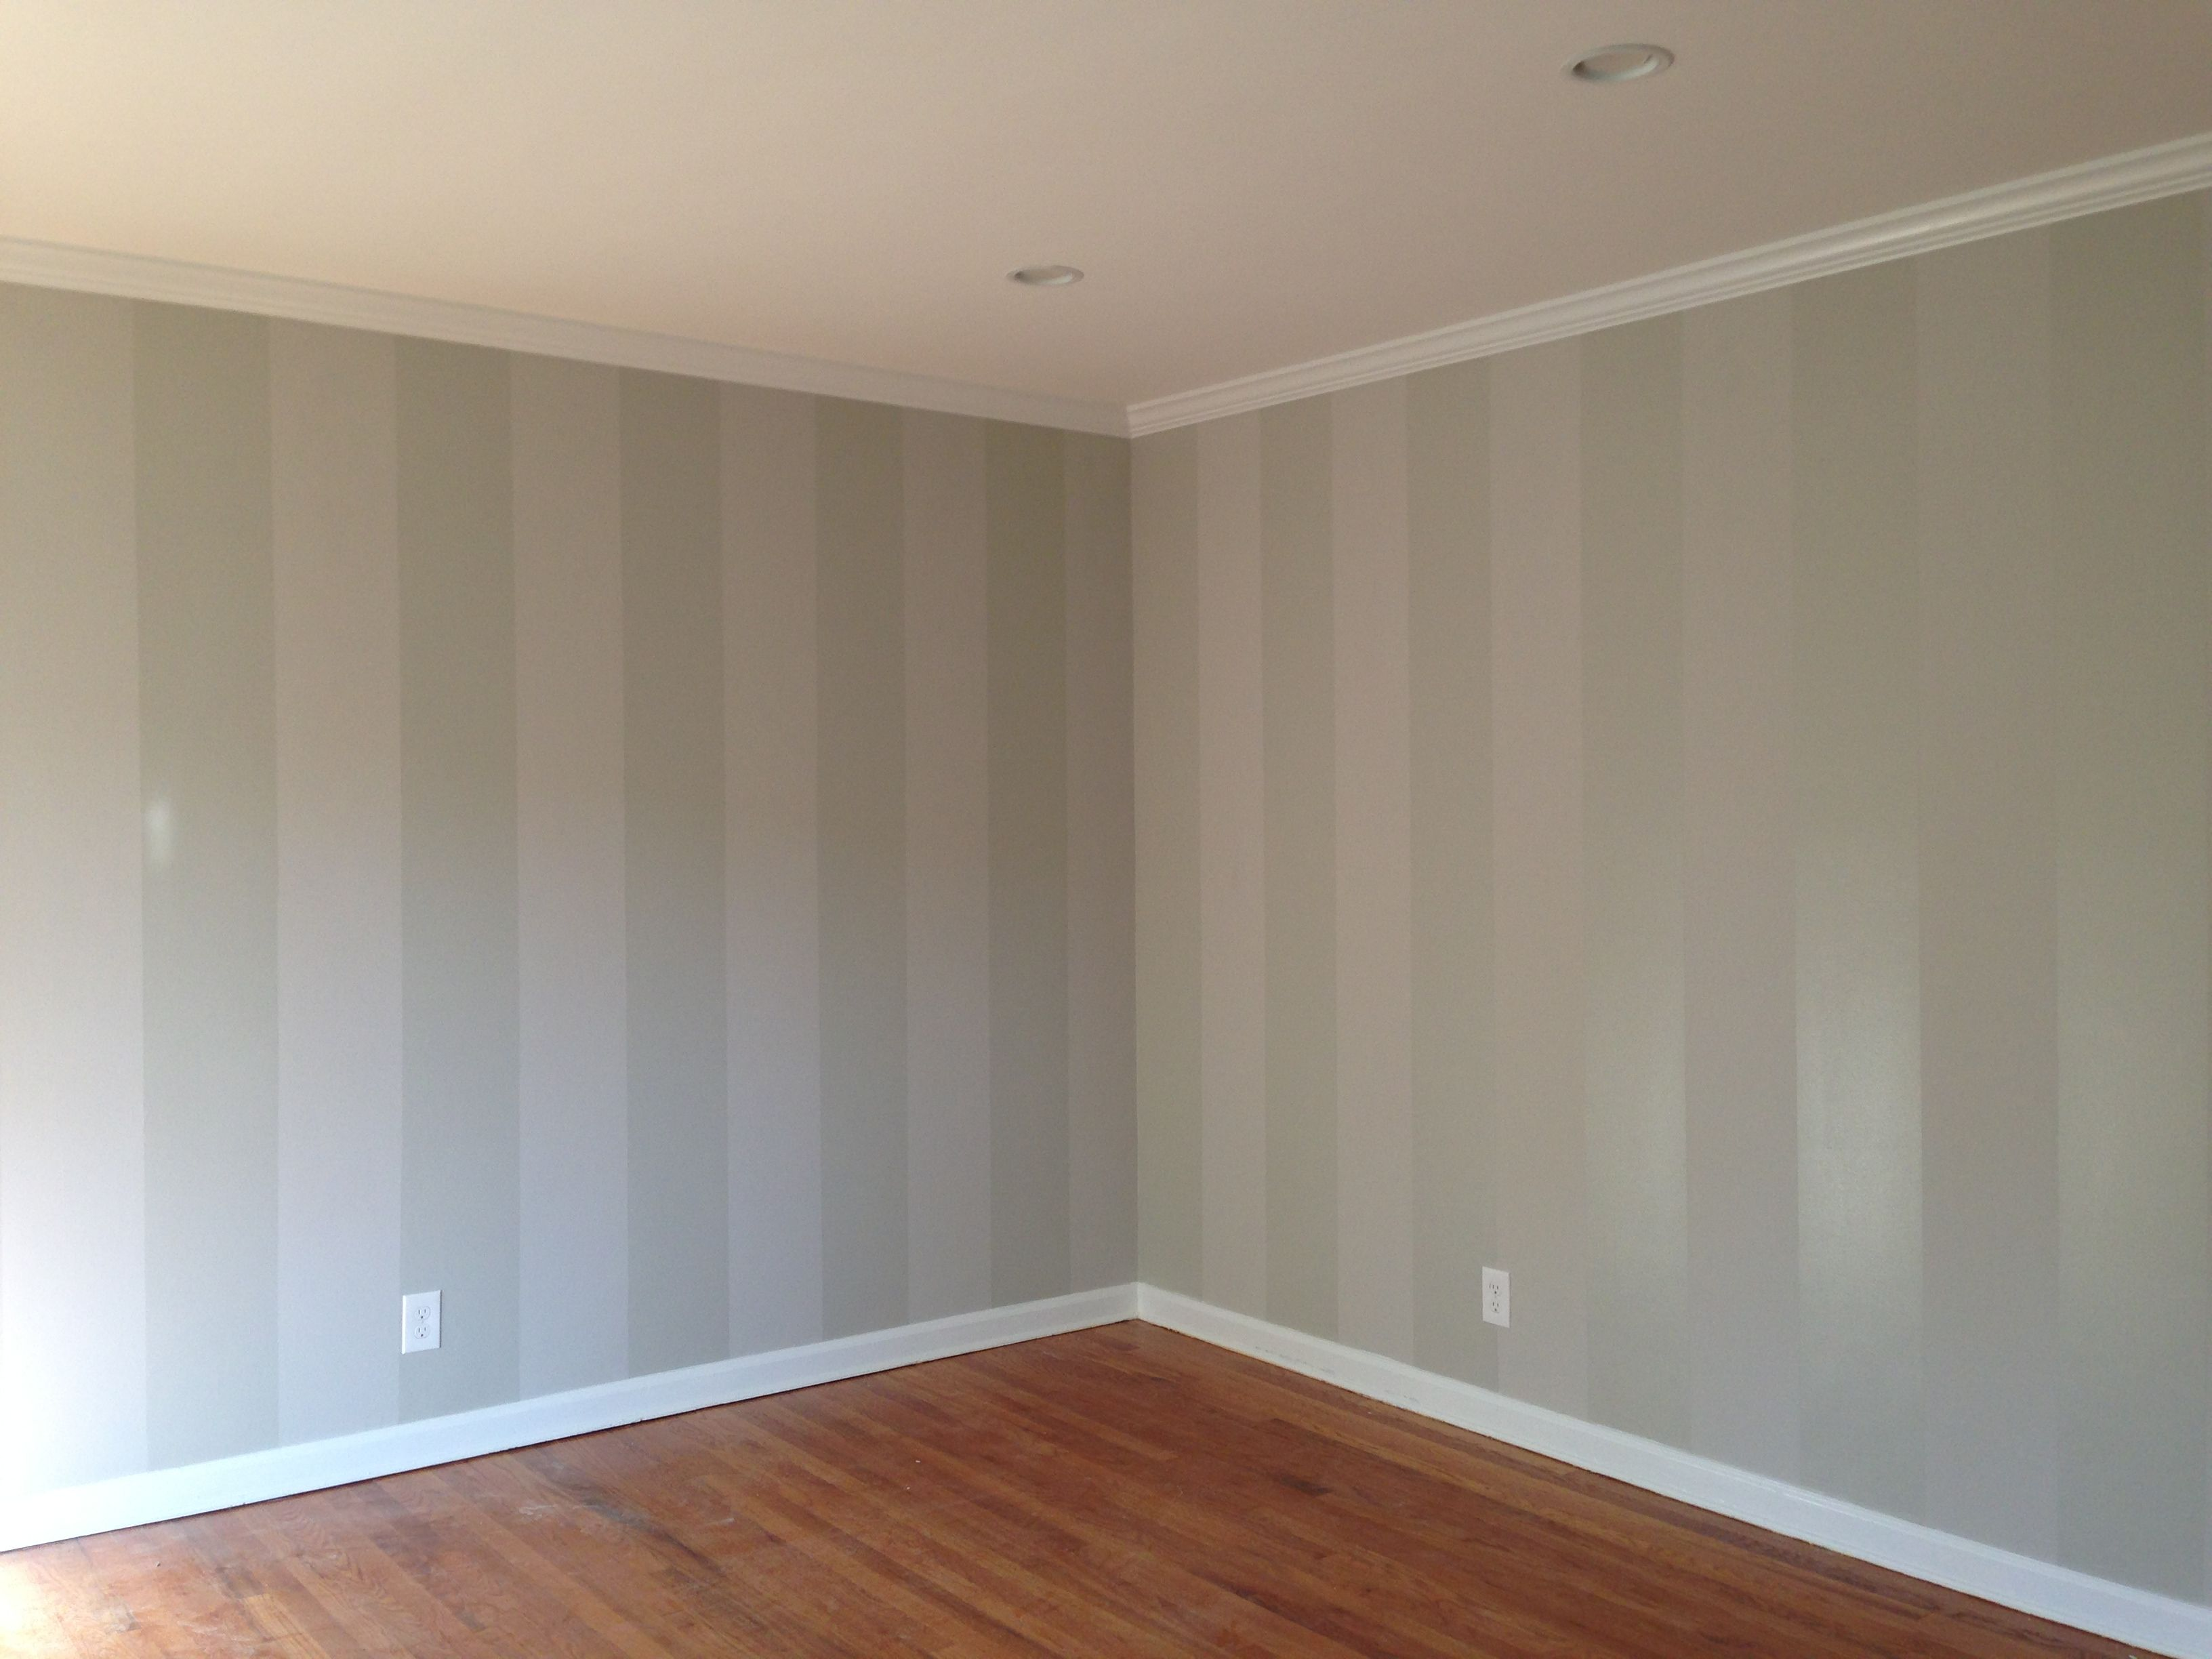 Casa De Rao Pic Of Our Living Room Accent Wall Gloss On Matte Painted Stripes In Bm Seattle Mis Accent Walls In Living Room Striped Accent Walls Paint Sheen